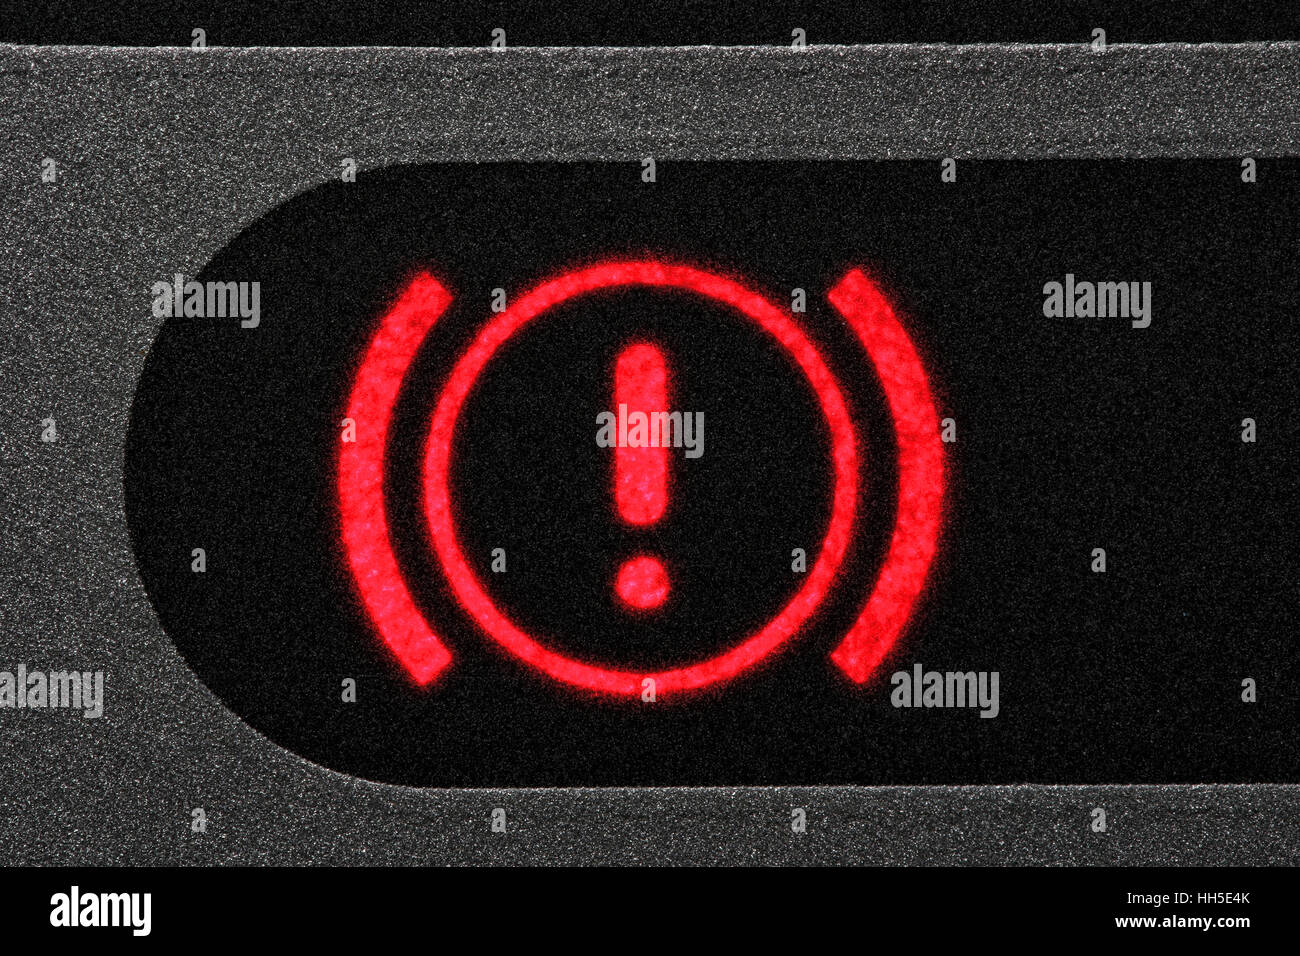 Warning Light In Car Dashboard Stock Photo Royalty Free Image - Car image sign of dashboarddashboard warning lights stock images royaltyfree images